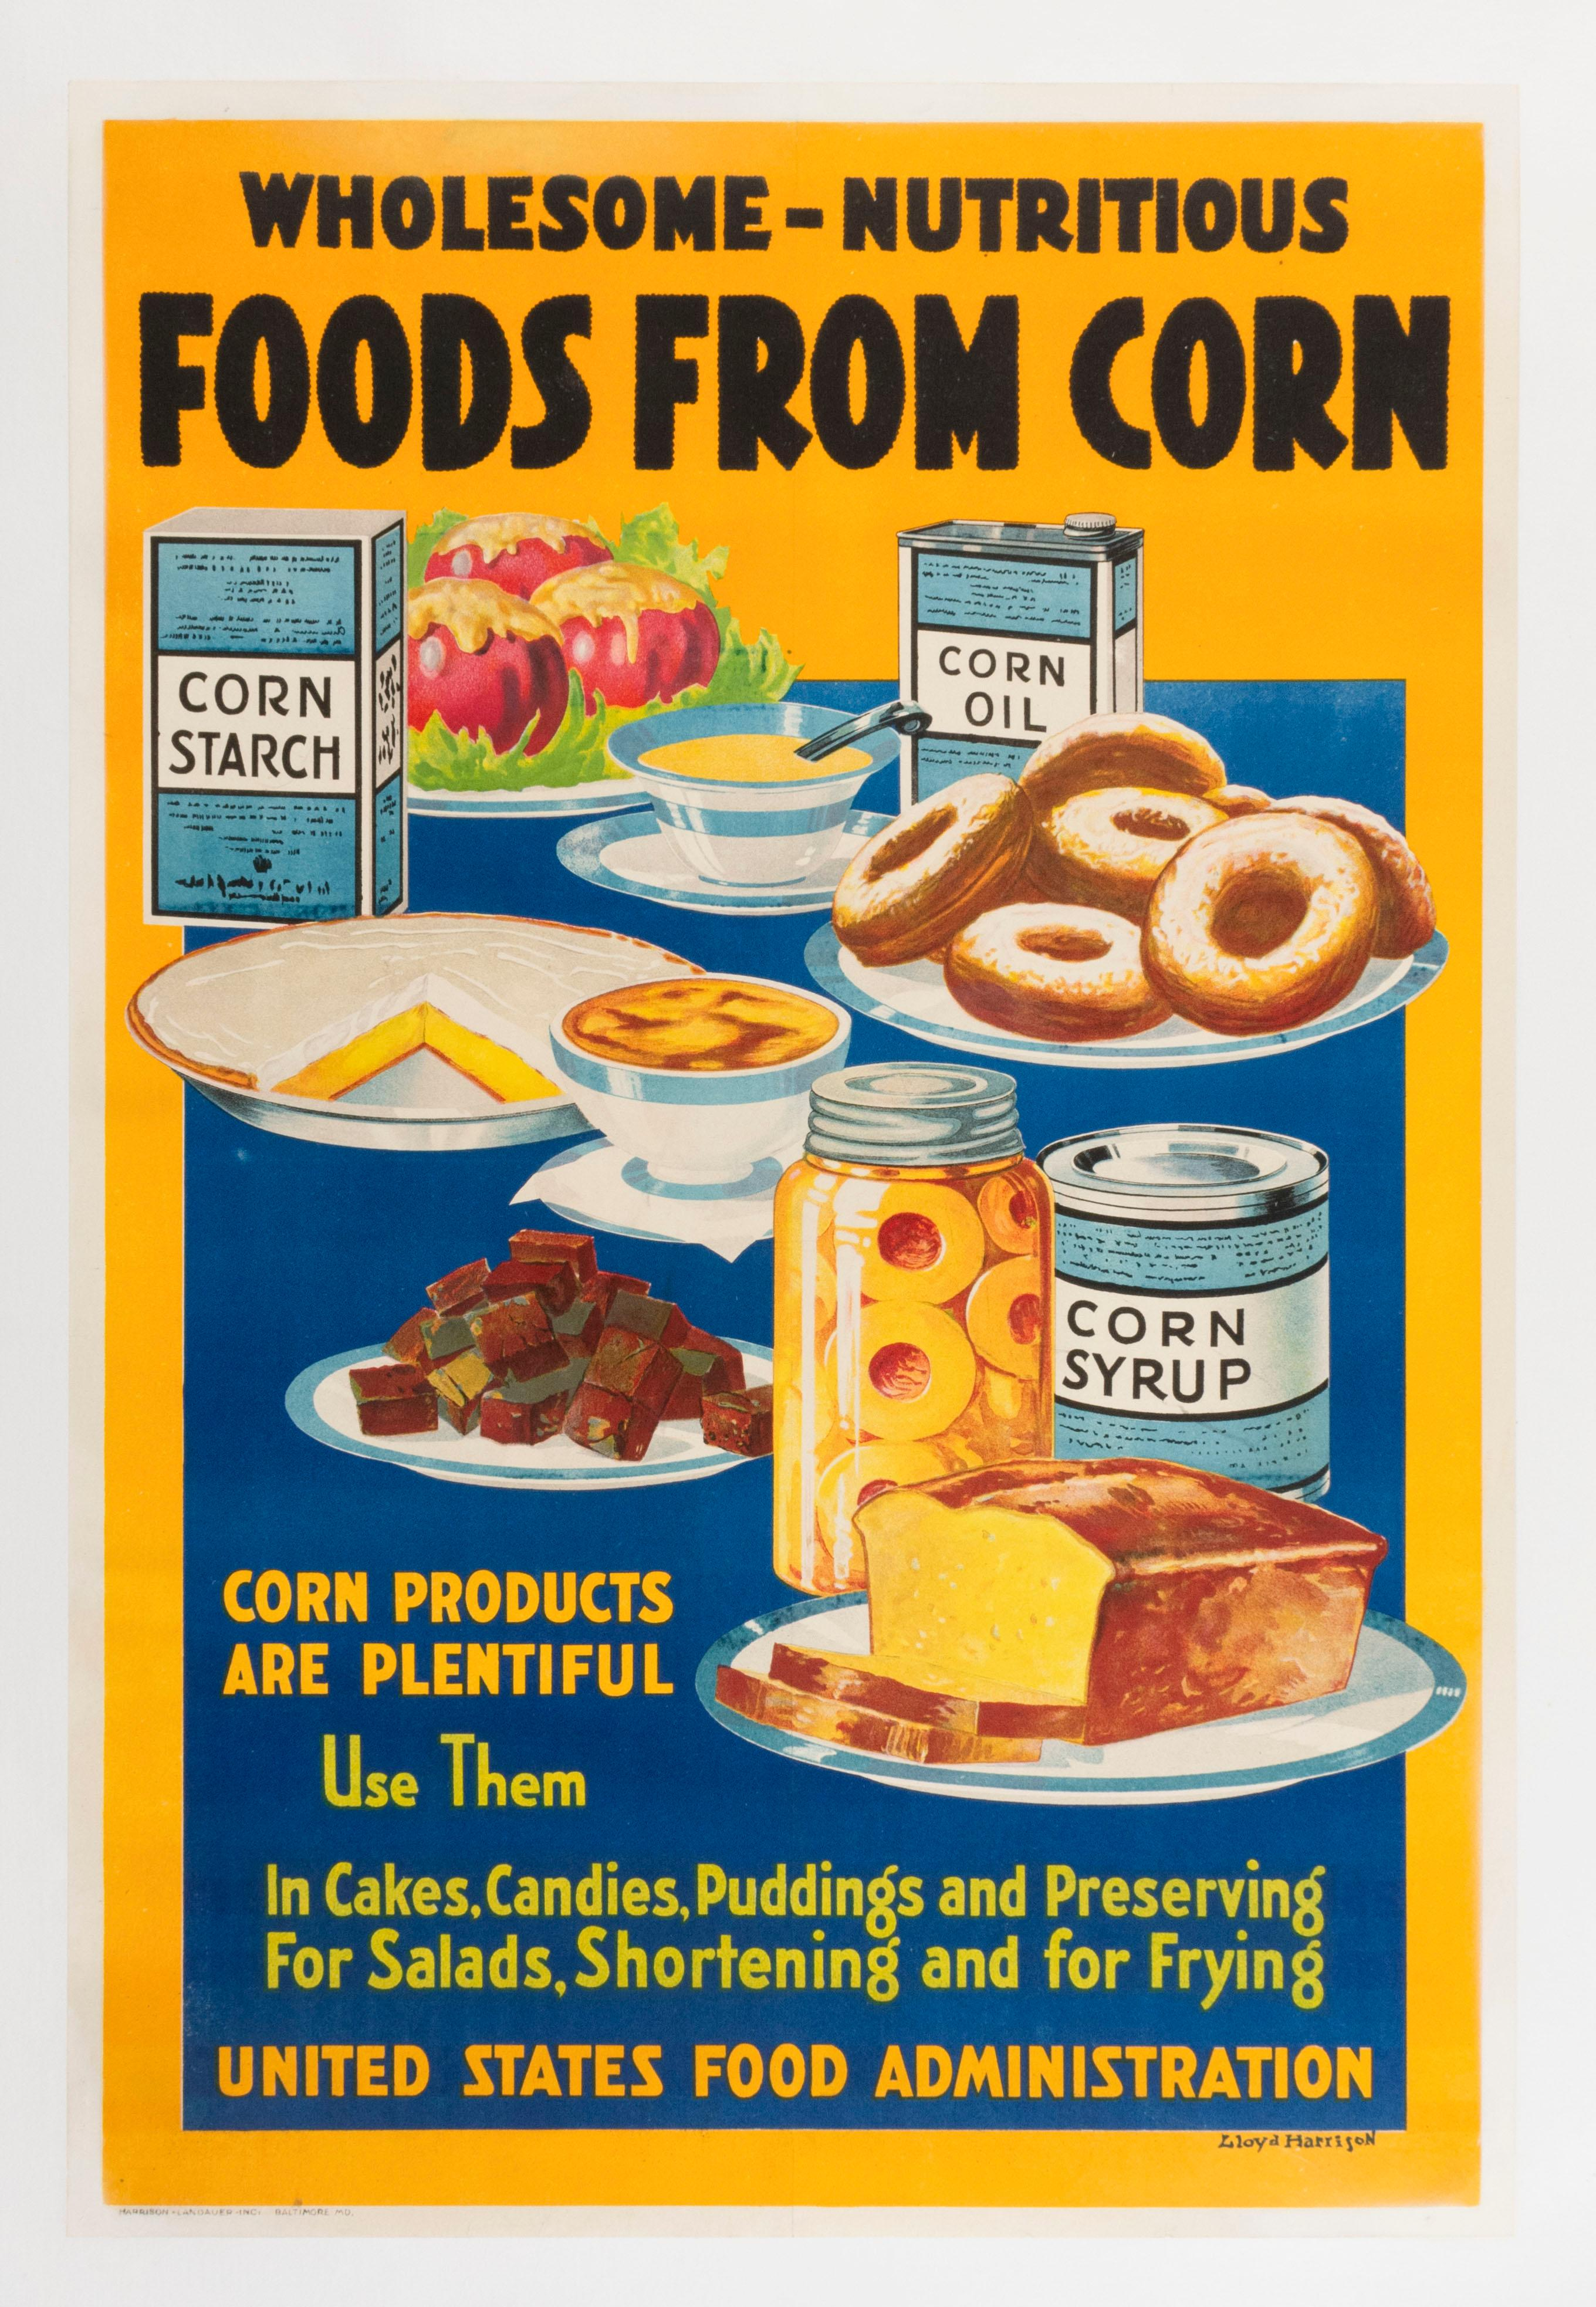 """""""WHOLESOME - NUTRITIOUS FOODS FROM CORN ..."""" WORLD WAR I POSTER By Lloyd Harrison for the United States Food Administration, publish..."""